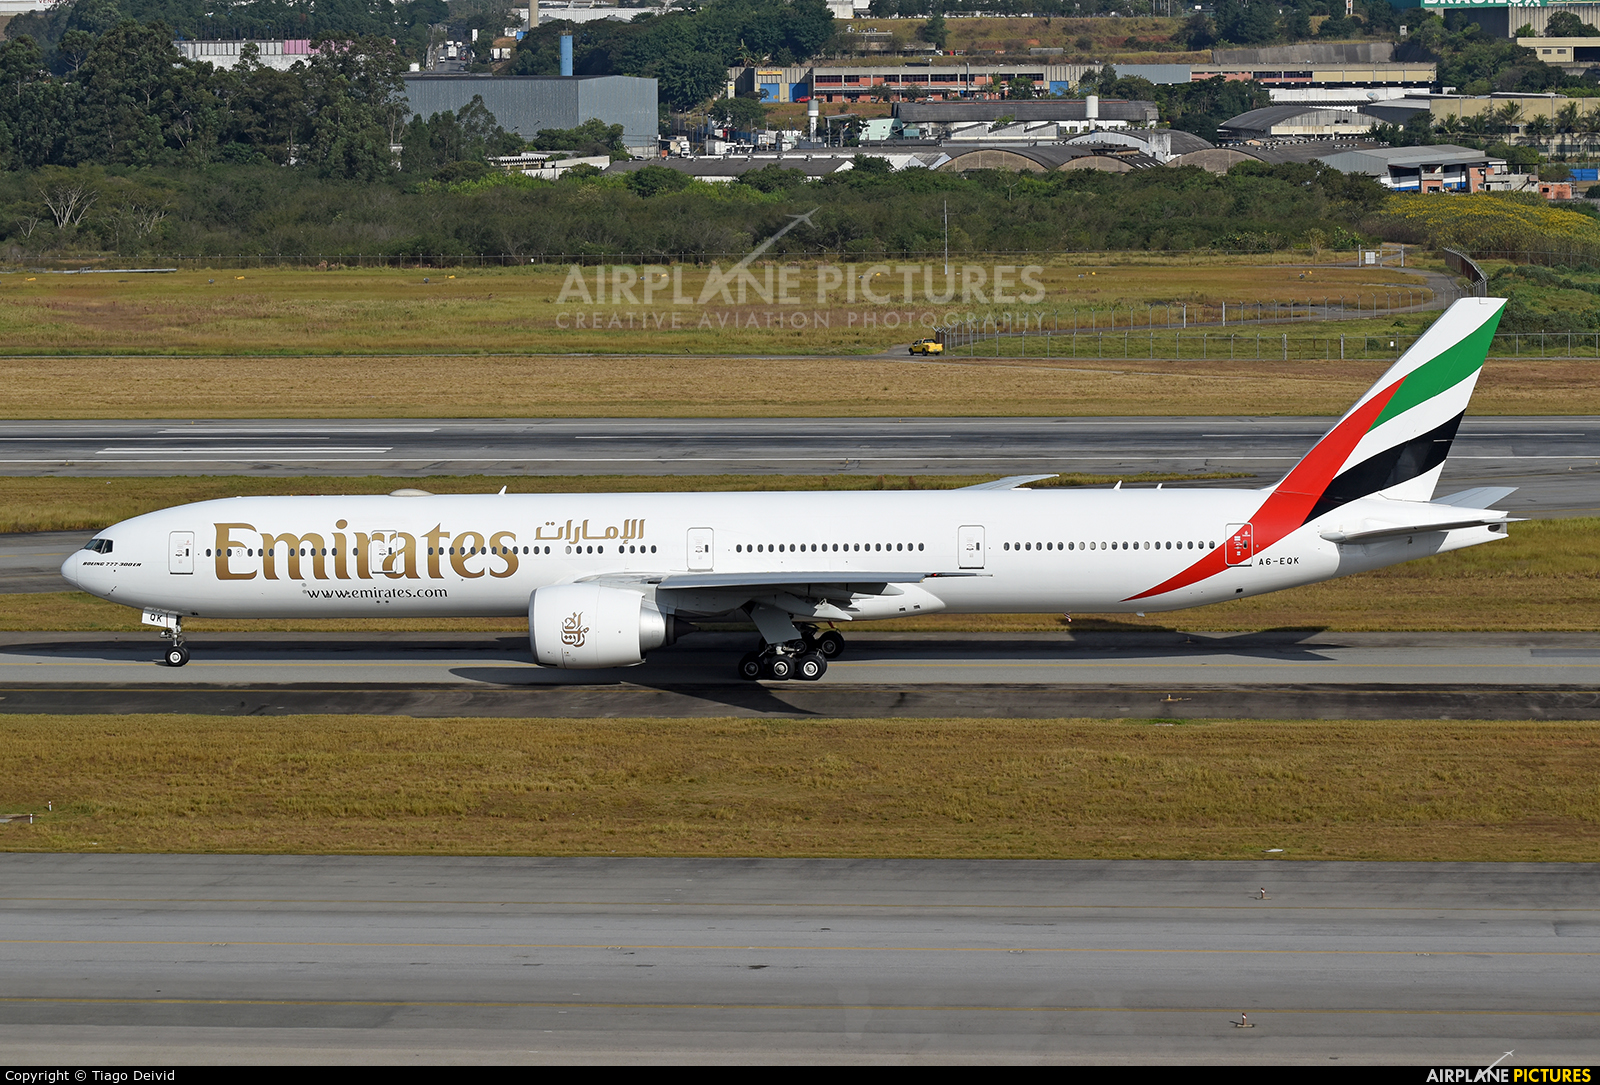 Emirates Airlines A6-EQK aircraft at São Paulo - Guarulhos